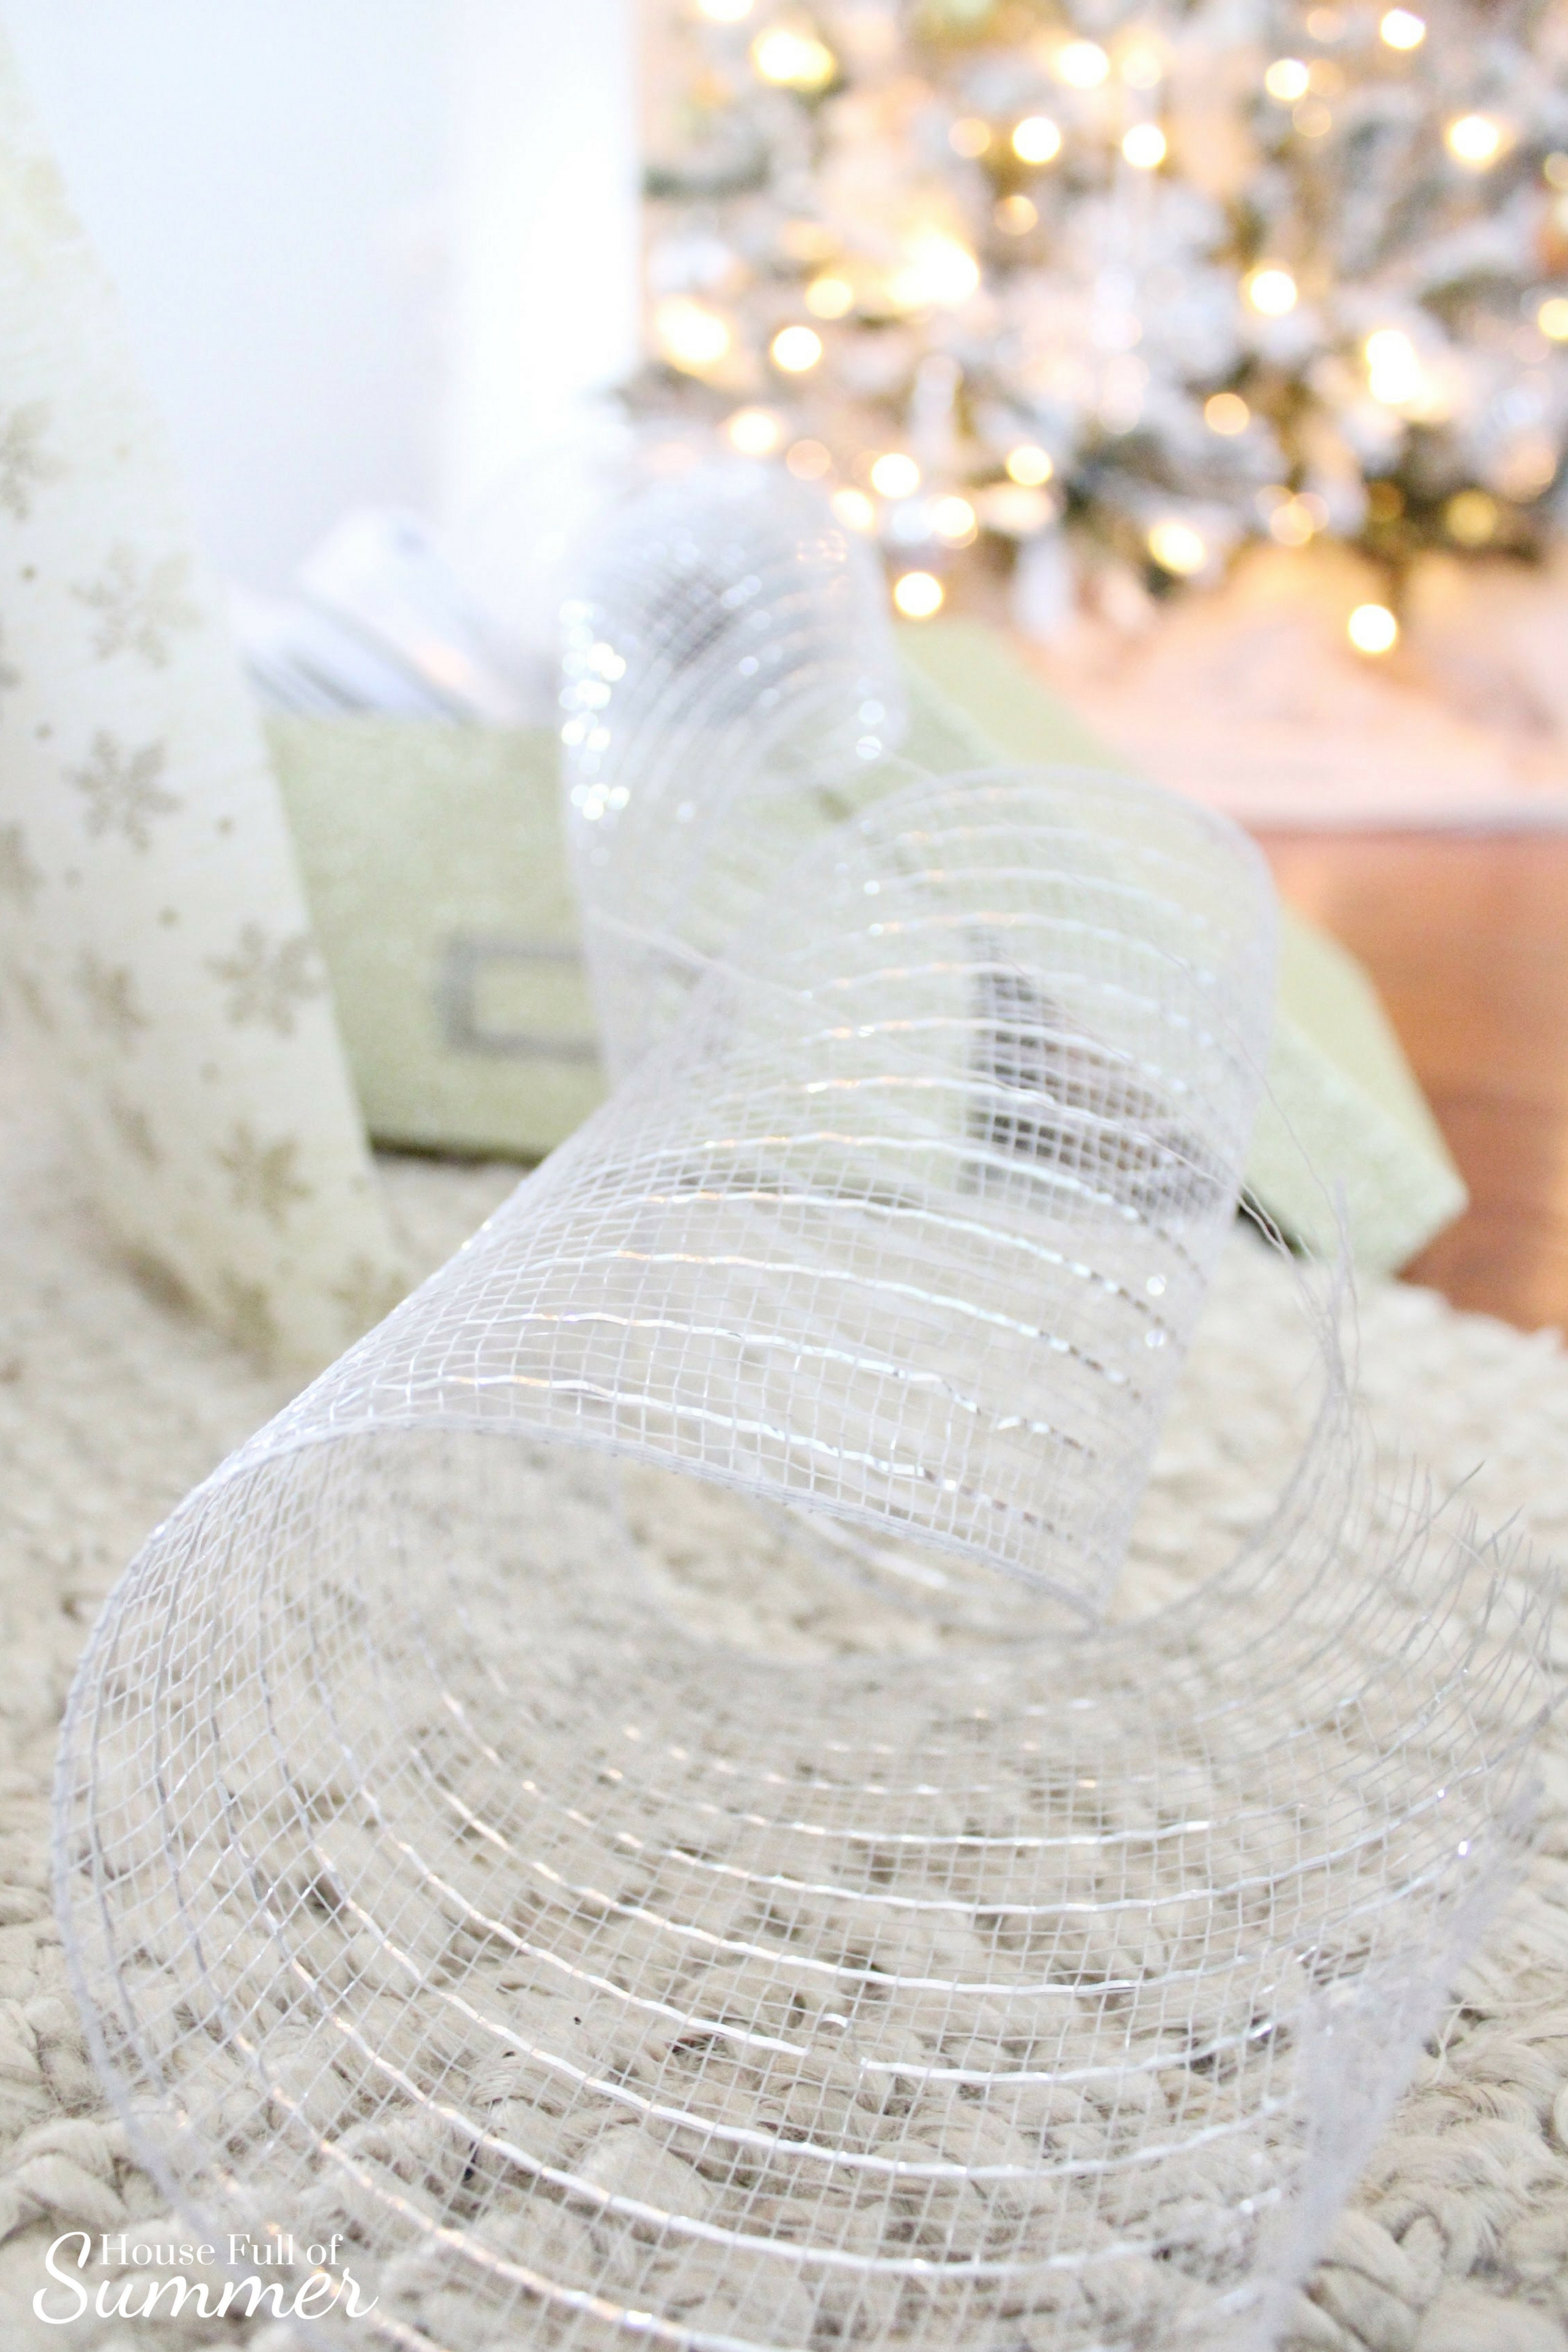 Christmas Home Tour | House Full of Summer blog hop - Cheerful Christmas Home Tourcoastal christmas neutral christmas decor, holiday home tour, florida christmas, gift wrapping ideas